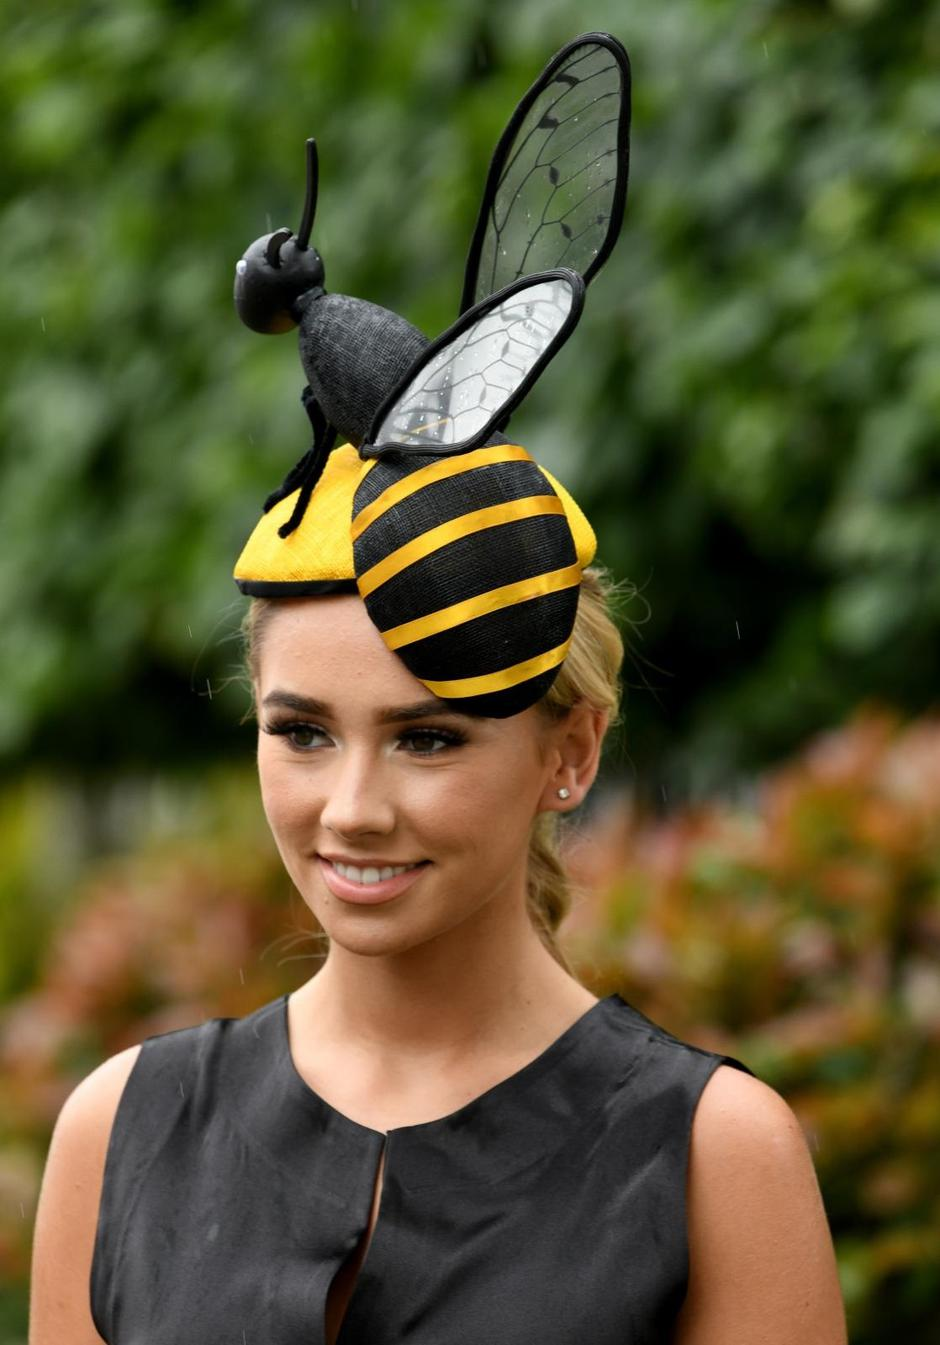 Royal Ascot - Day One - Ascot Racecourse | Autor: Anwar Hussein/Press Association/PIXSELL